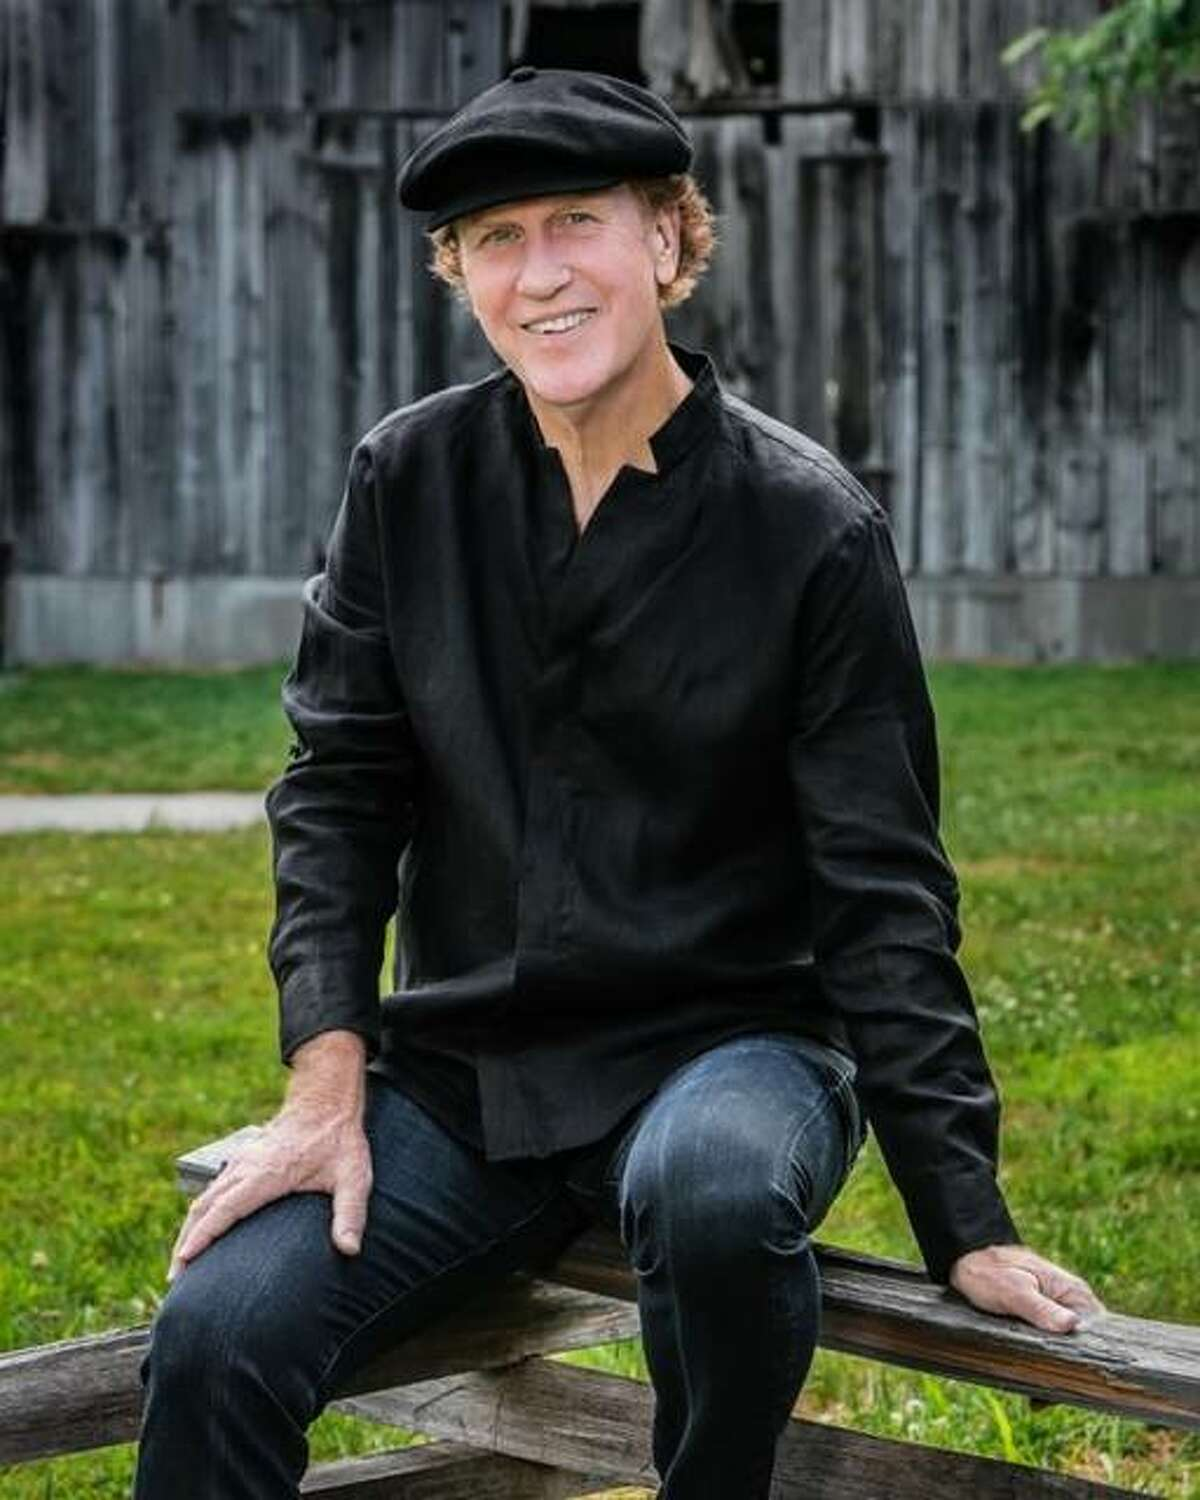 Roger Boyd, a founding member of Head East, will perform with his band at the Wildey Theatre, 252 N. Main St., in Edwardsville on July 23 and July 24 8-10 p.m.